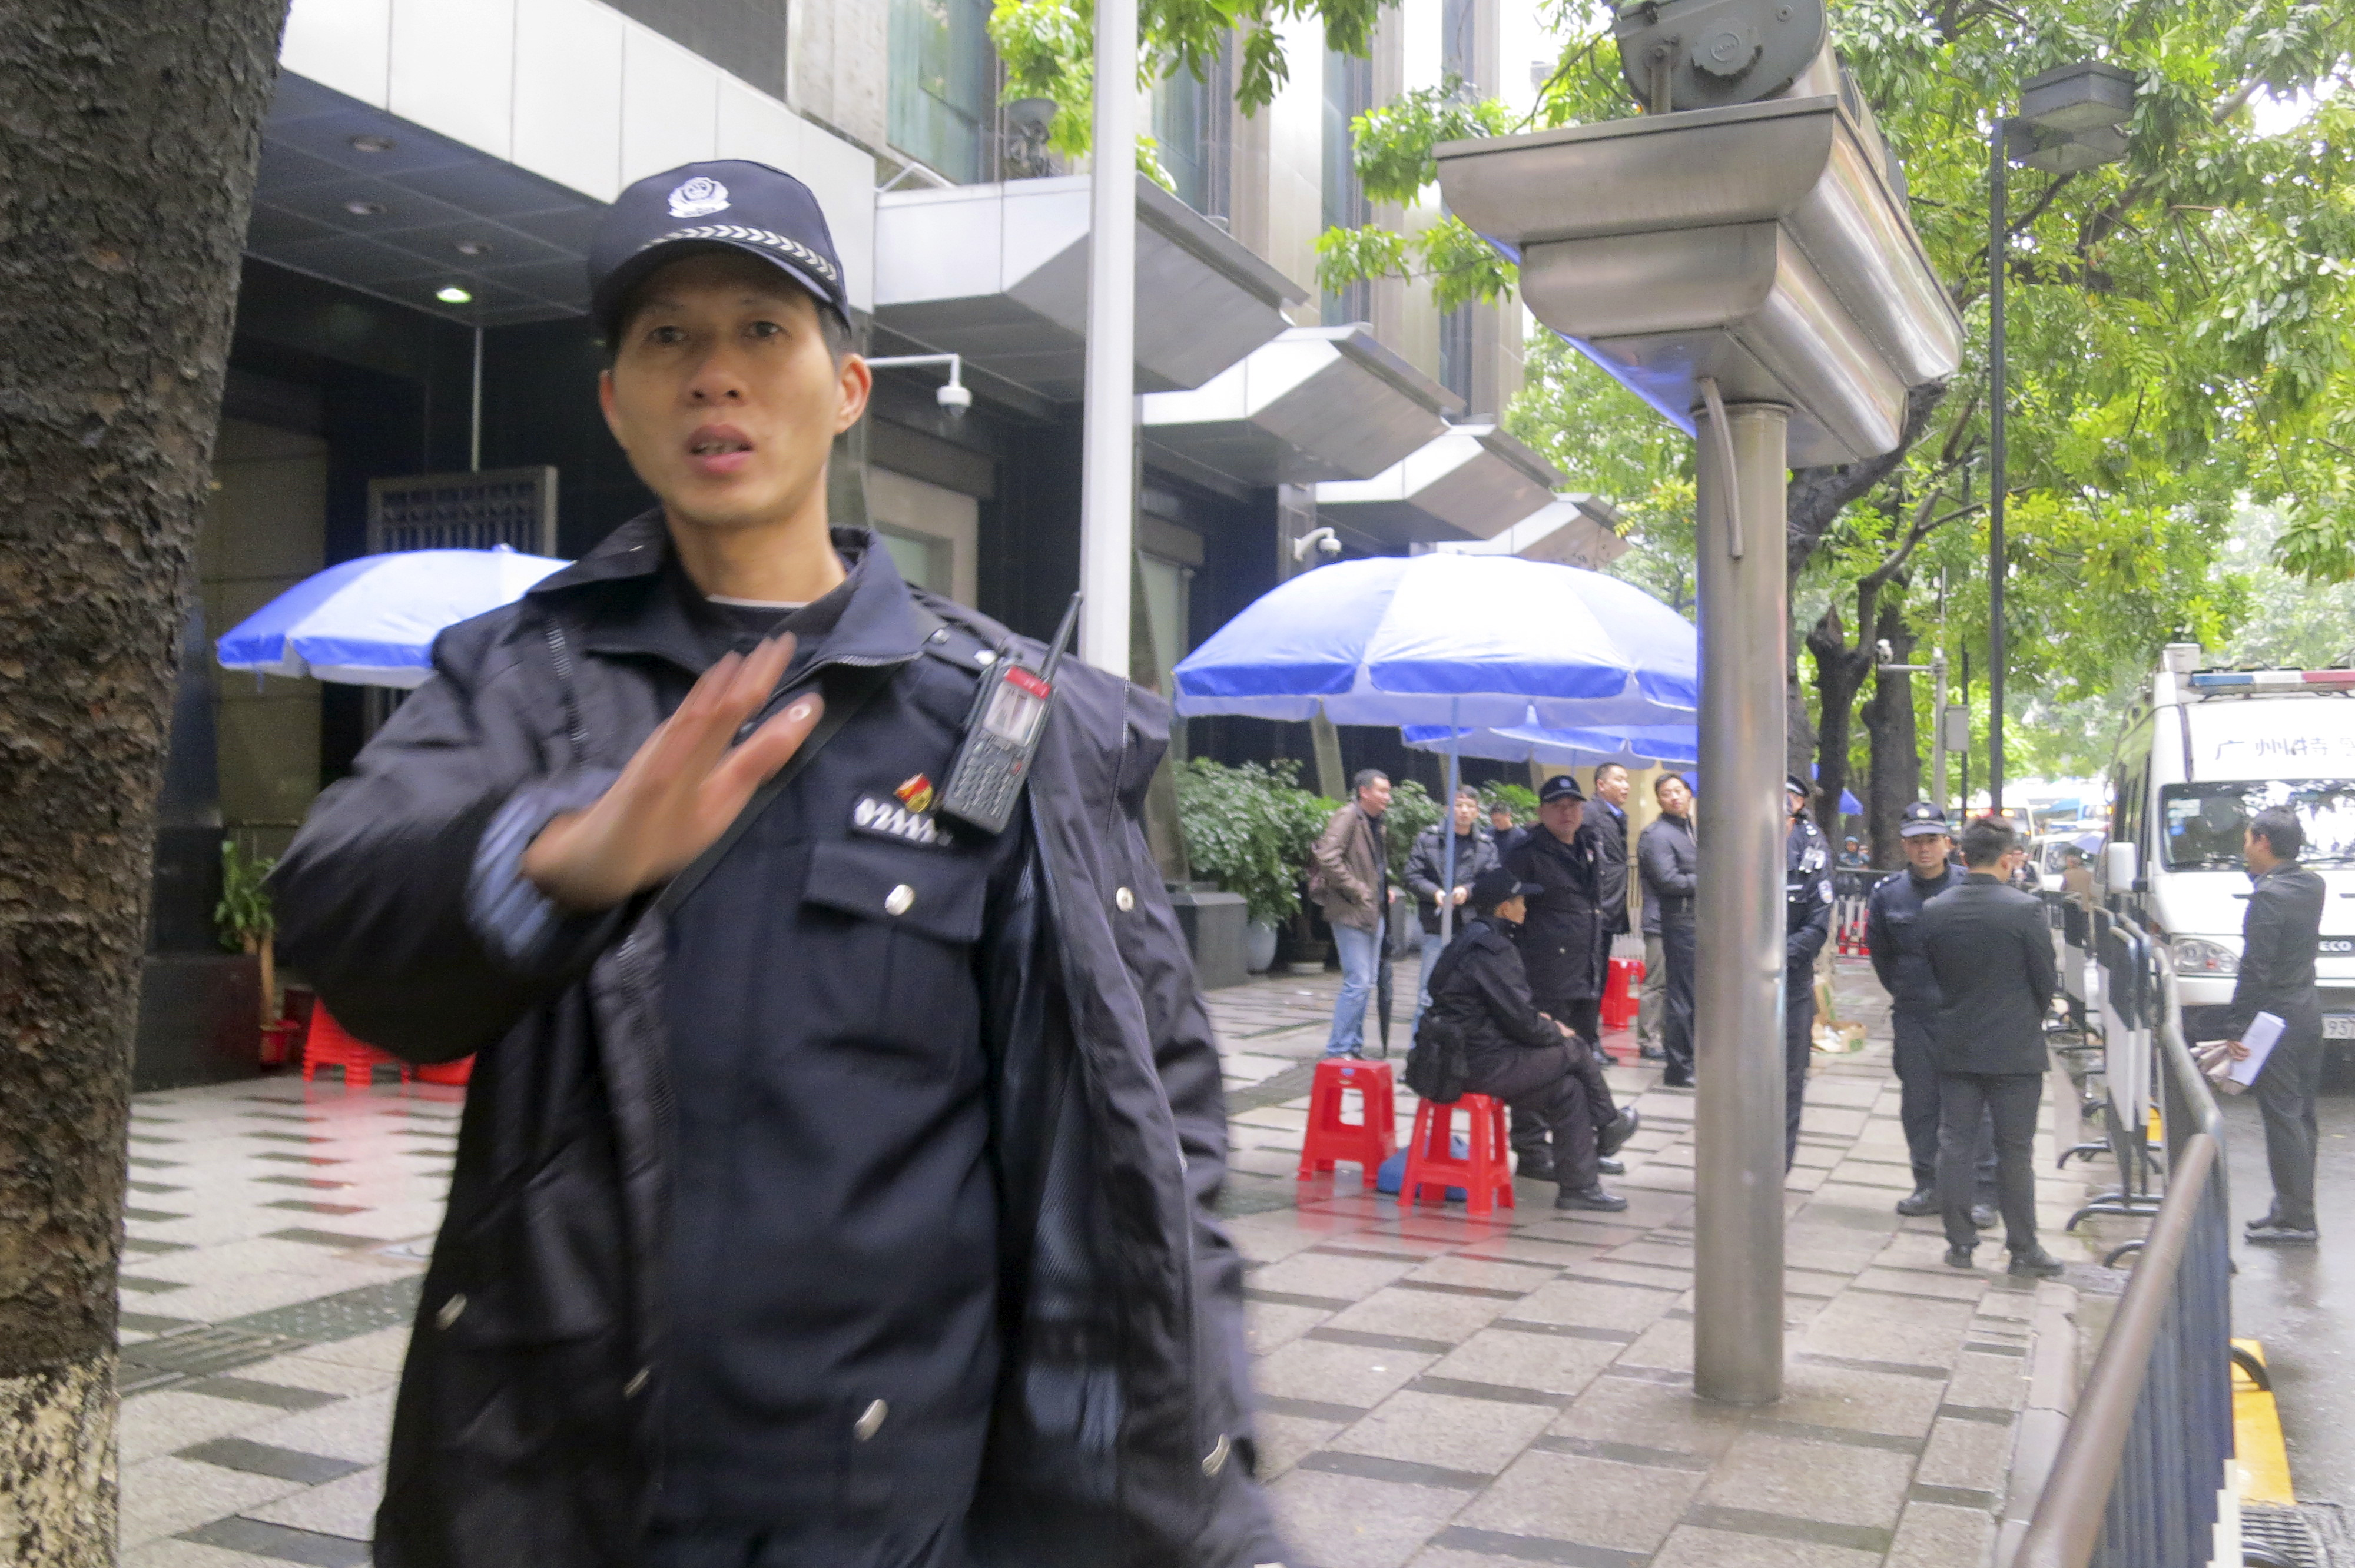 Policemen stand guard outside a court in the southern Chinese city of Guangzhou Jan. 29, 2016. A court in Guangzhou on Friday jailed three men on subversion charges